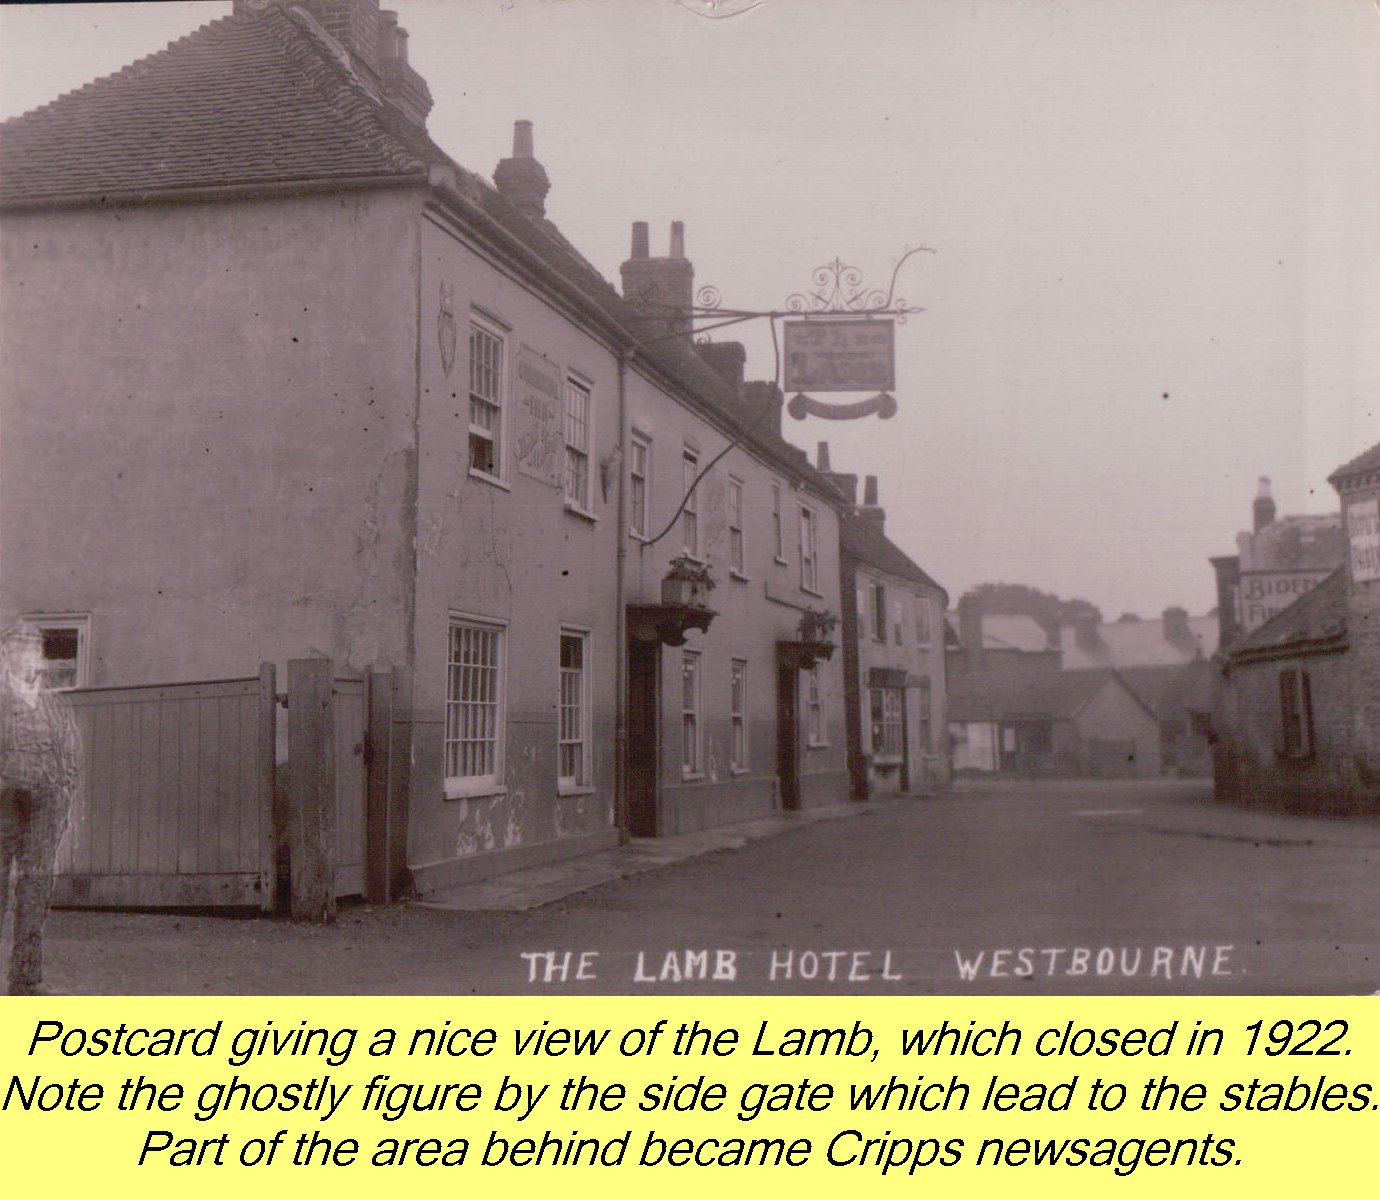 WESTBOURNE HISTORY PHOTO, CRIPPS, LAMB INN, STABLES, SHORT STREET